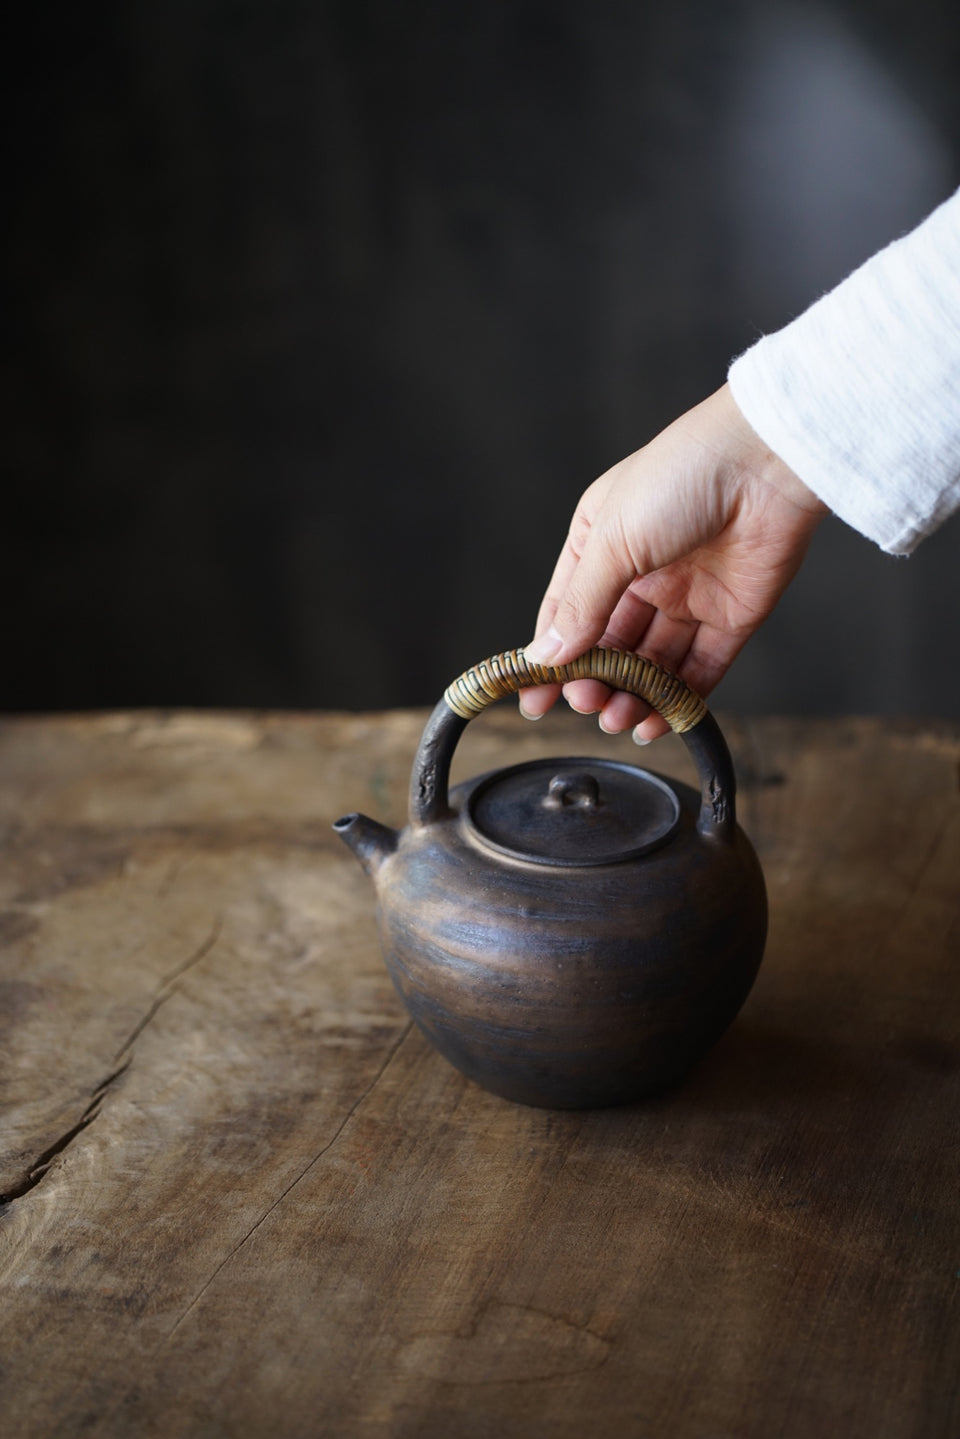 Metal Glazed Ceramic Kettle with Bamboo Skin Handle